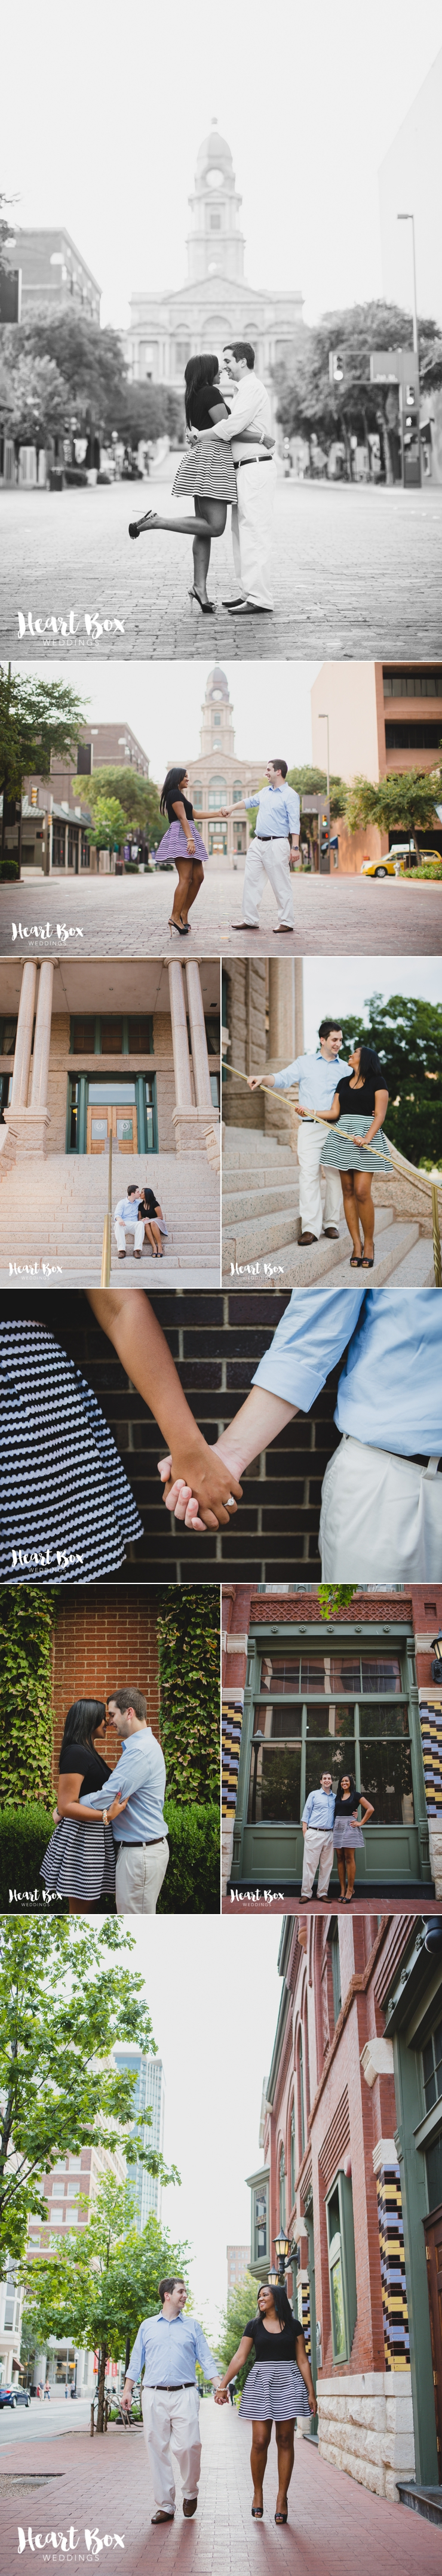 Ray Engagement Blog Collages 1.jpg